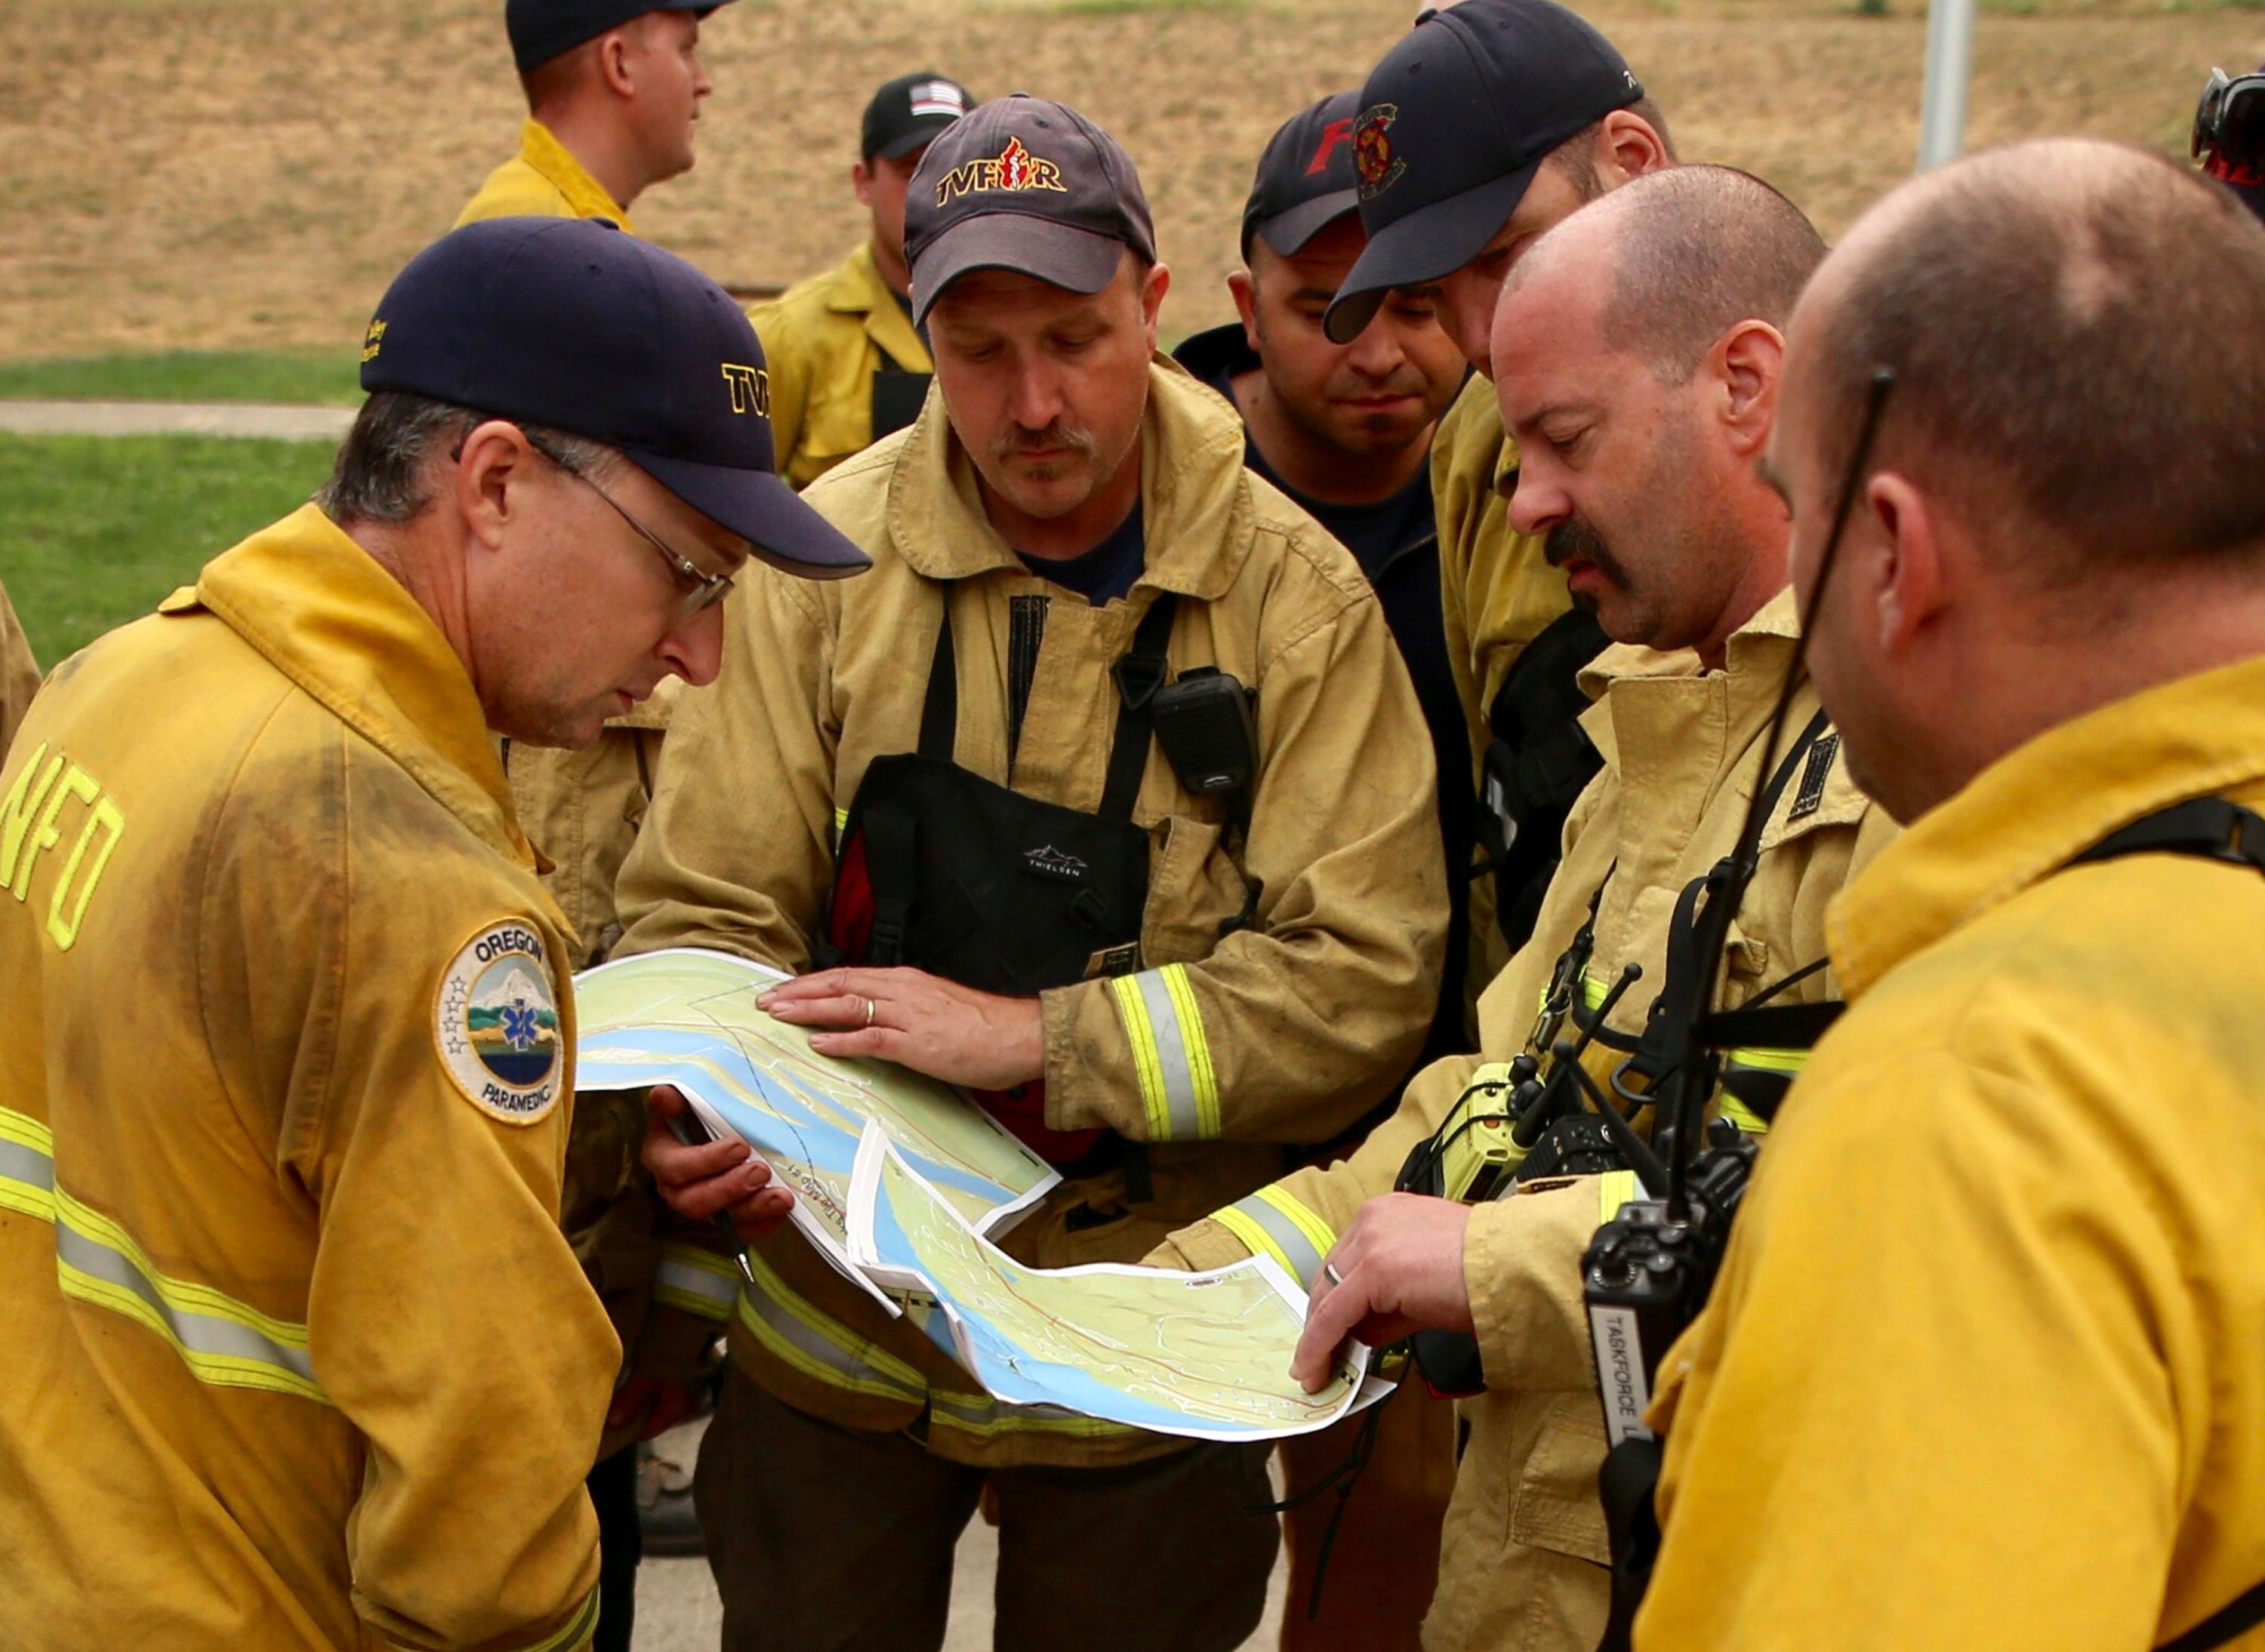 Firefighters look over maps in Cascade Locks, Ore., Wednesday, Sept. 6, 2017, near where the Eagle Creek wildfire continues to burn. Firefighting crews are in the town in anticipation of west winds possibly pushing the fire into town. (AP Photo/Randy L. Rasmussen)